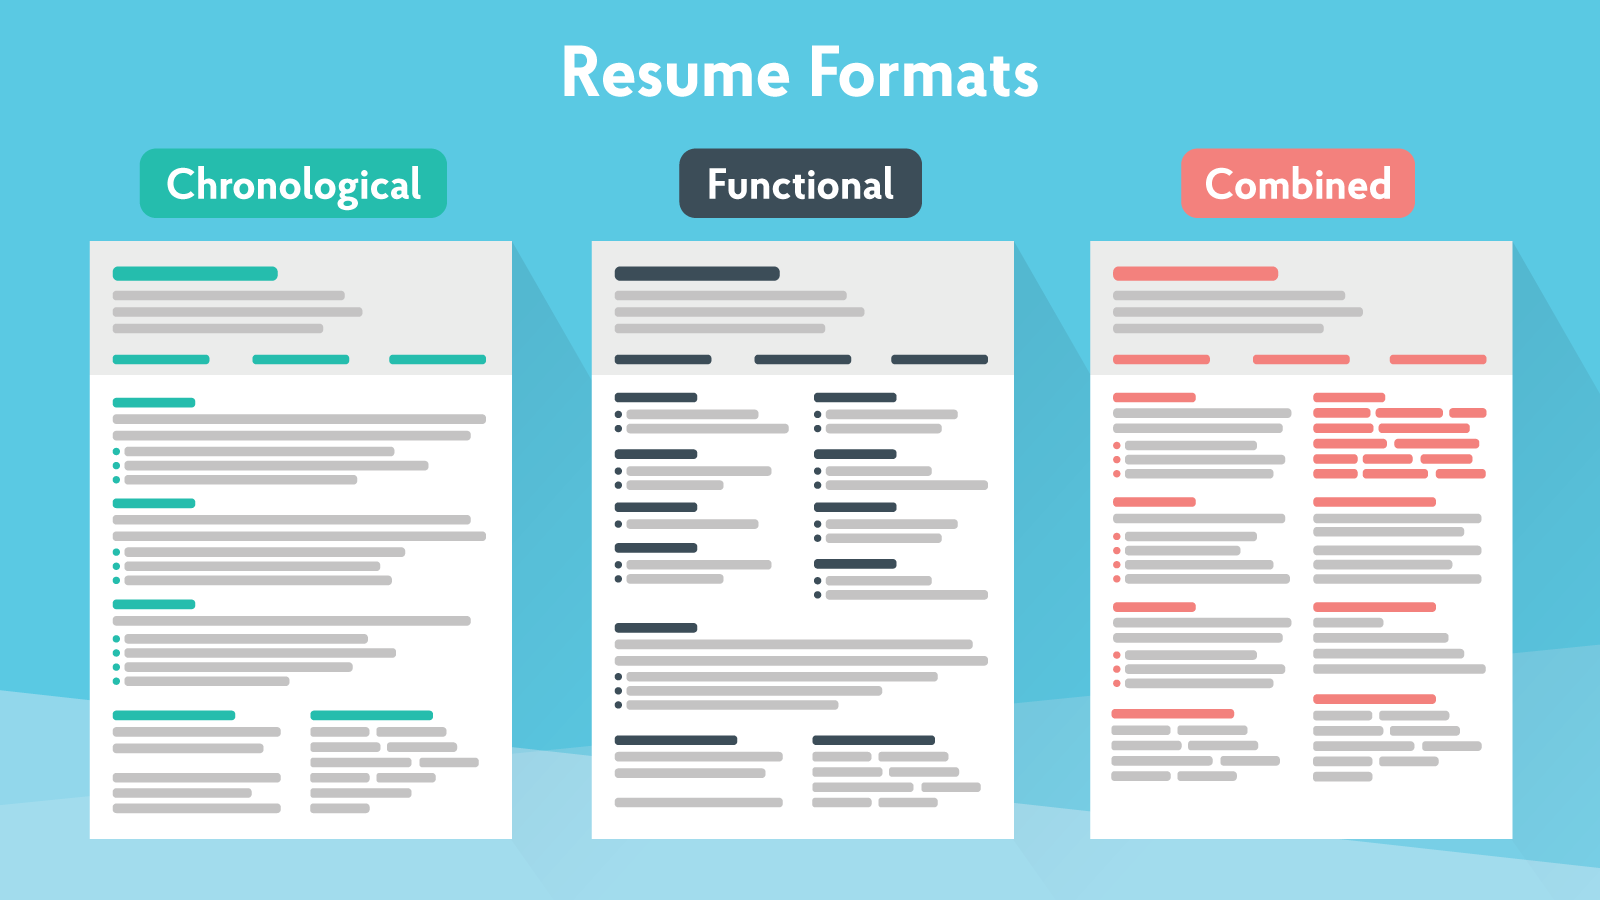 Best Resume 2019 How to Pick the Best Resume Format in 2019 [+Examples]